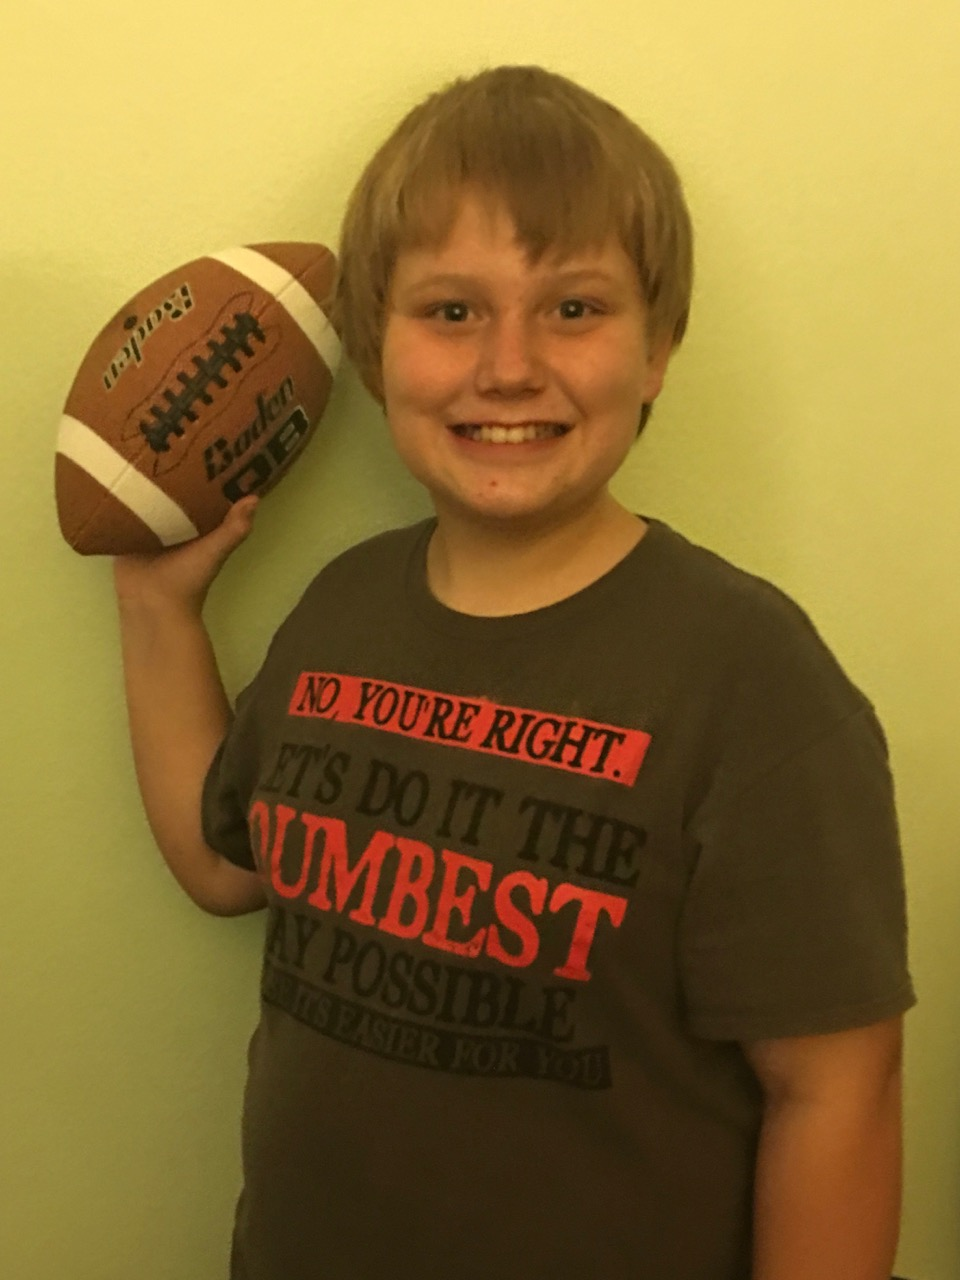 This young man is quite happy with his new football.